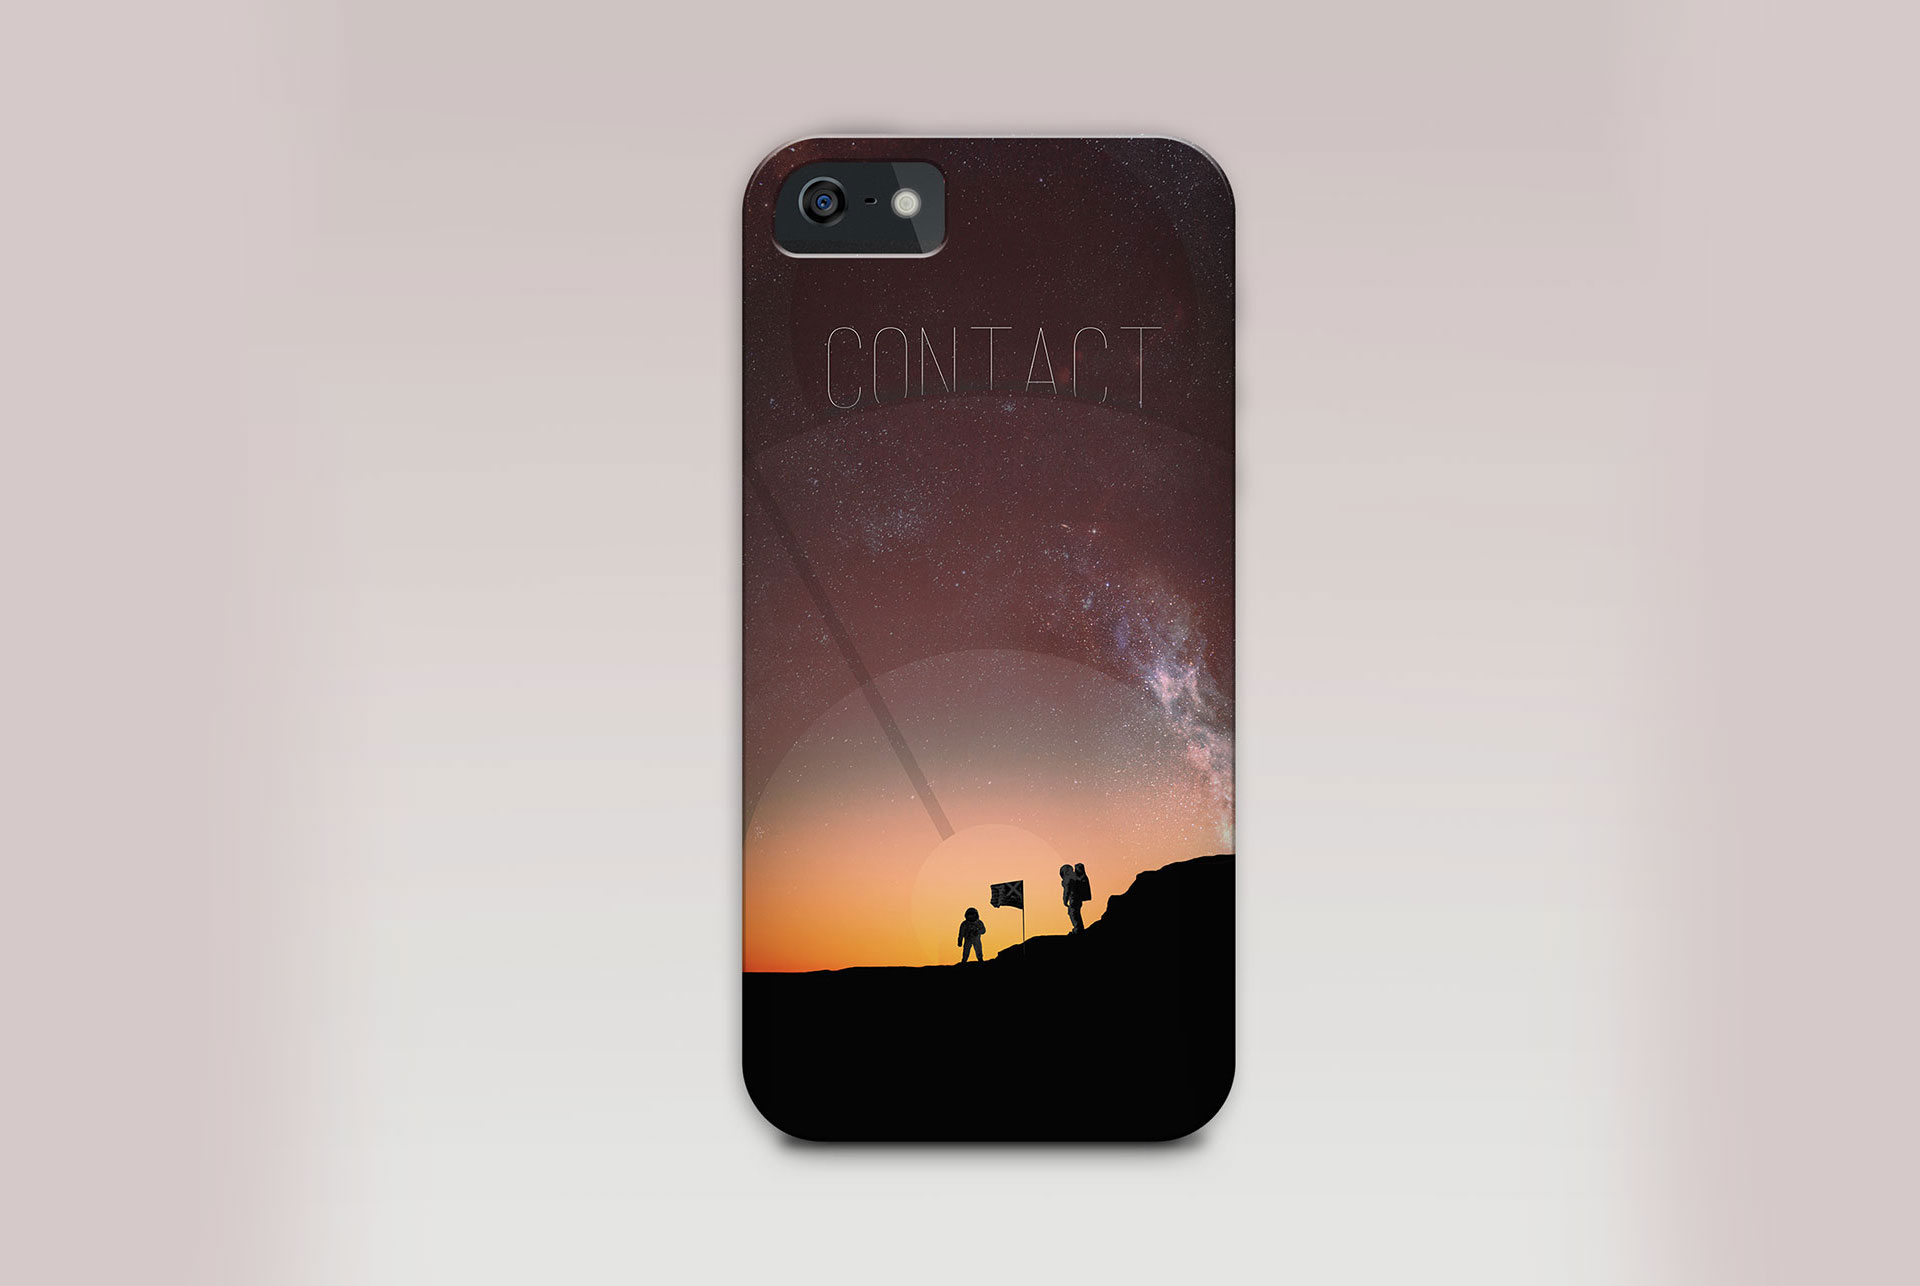 space walk exploration design phone case mockup